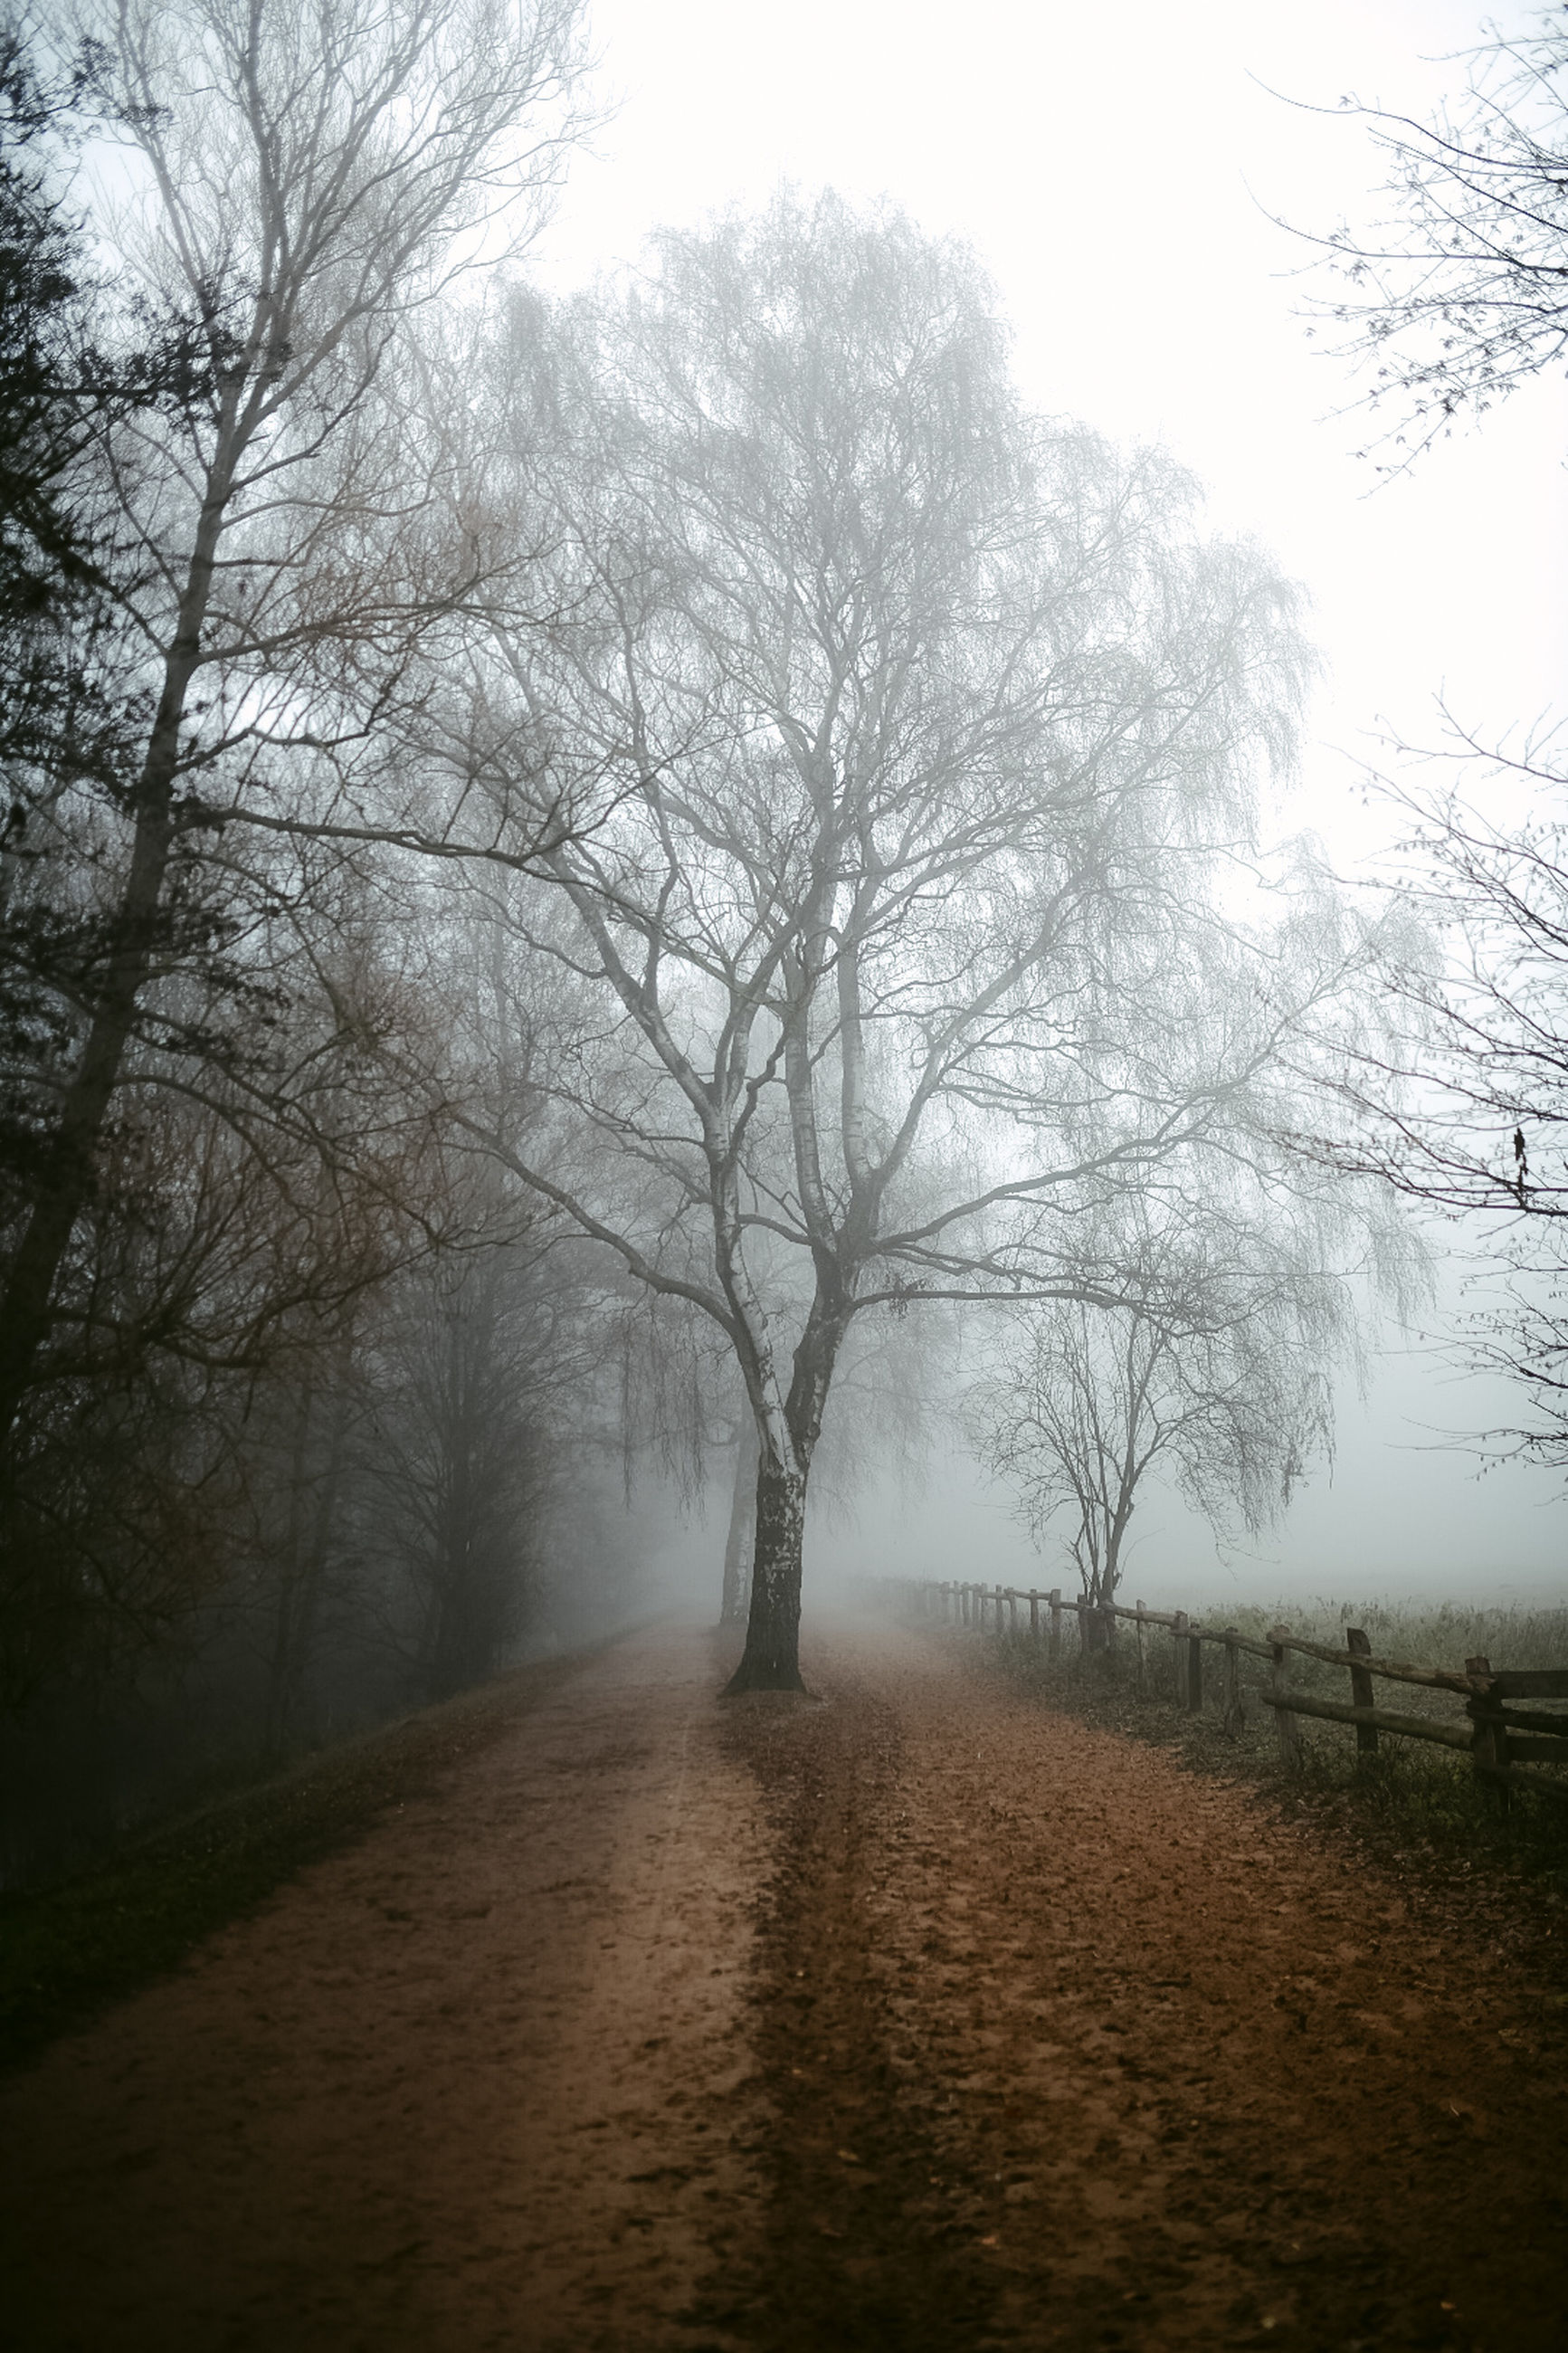 tree, fog, plant, tranquility, the way forward, beauty in nature, direction, tranquil scene, nature, scenics - nature, no people, road, non-urban scene, land, sky, day, bare tree, landscape, environment, diminishing perspective, outdoors, treelined